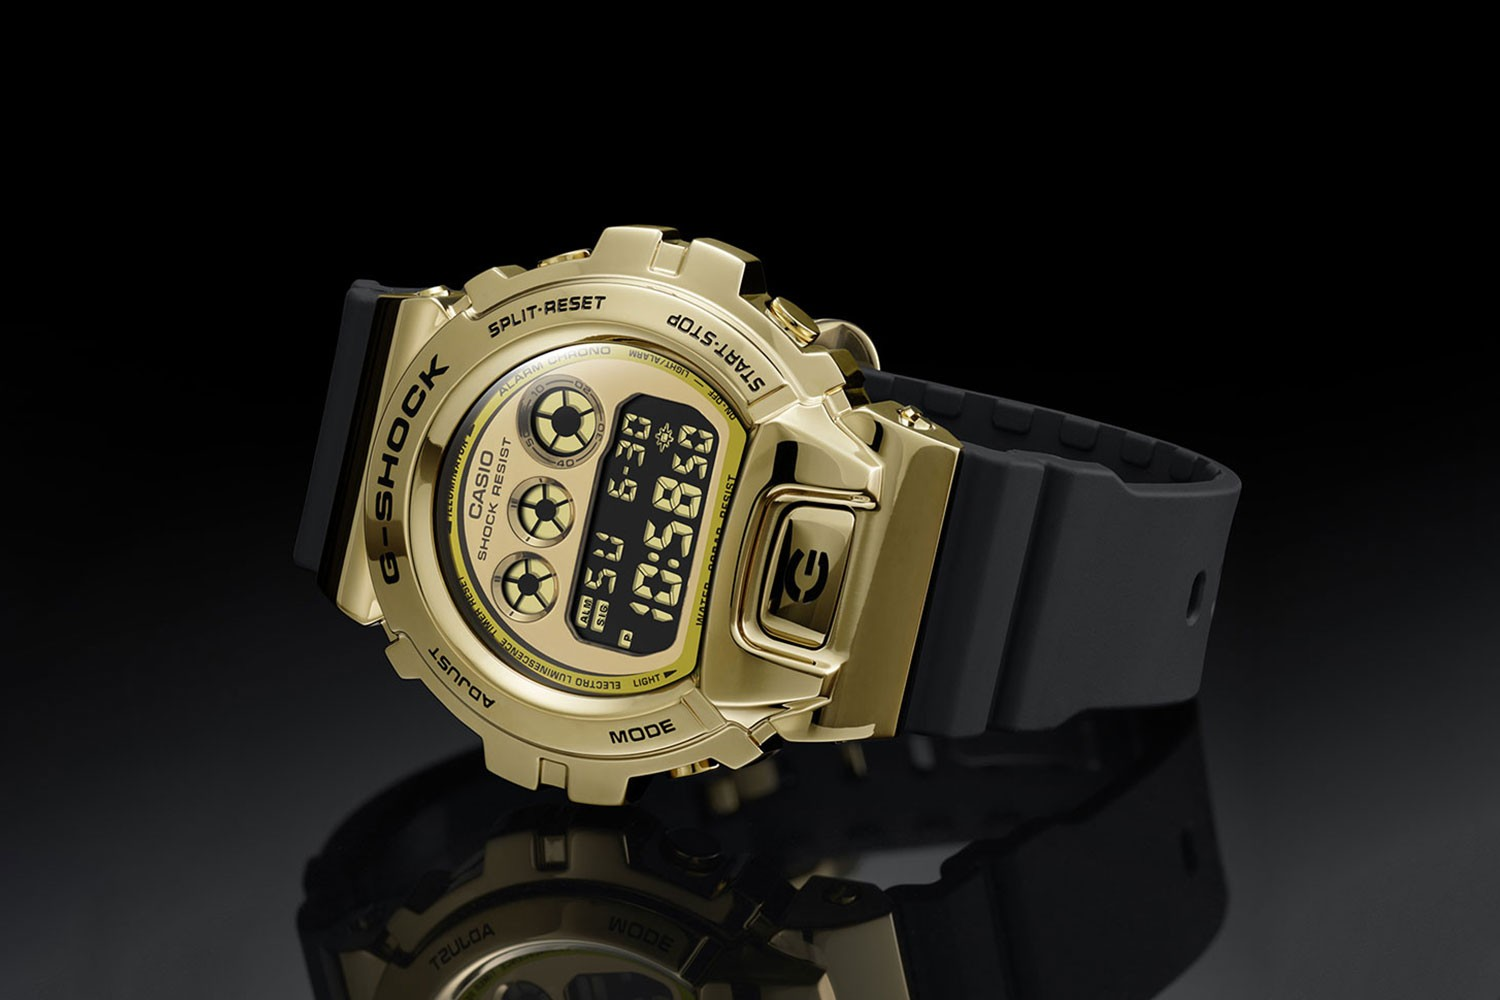 G-SHOCK Singapore Jahan Loh contemporary artist metal forged GM 6900 watch Animation There is No Planet B collaboration Intergalactic Dreams